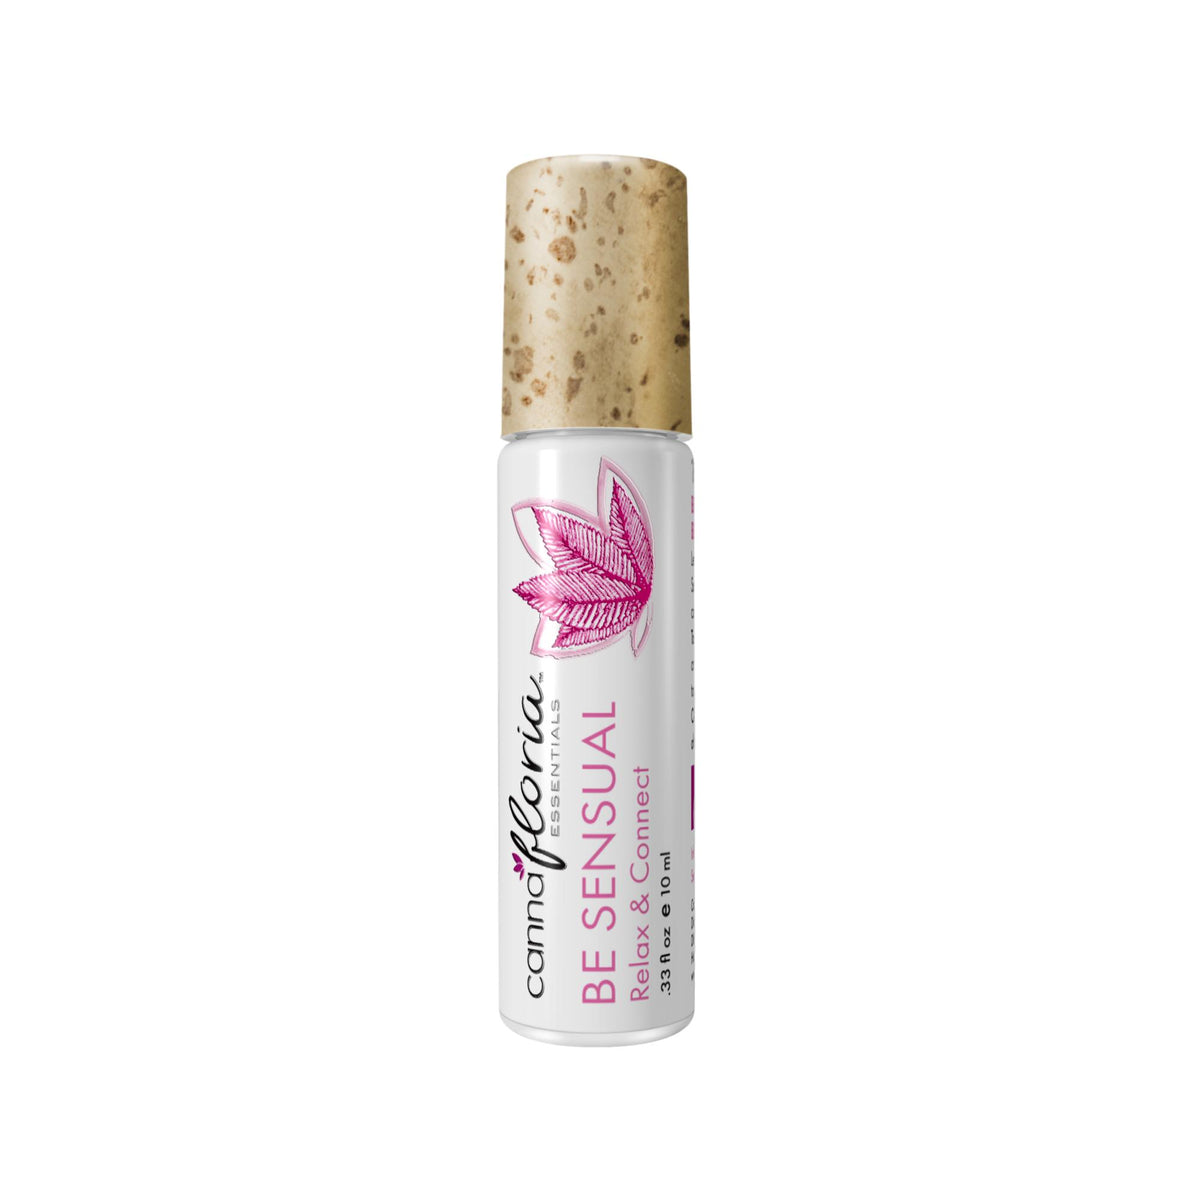 Cannafloria Aromatherapy Roll-On, Be Sensual